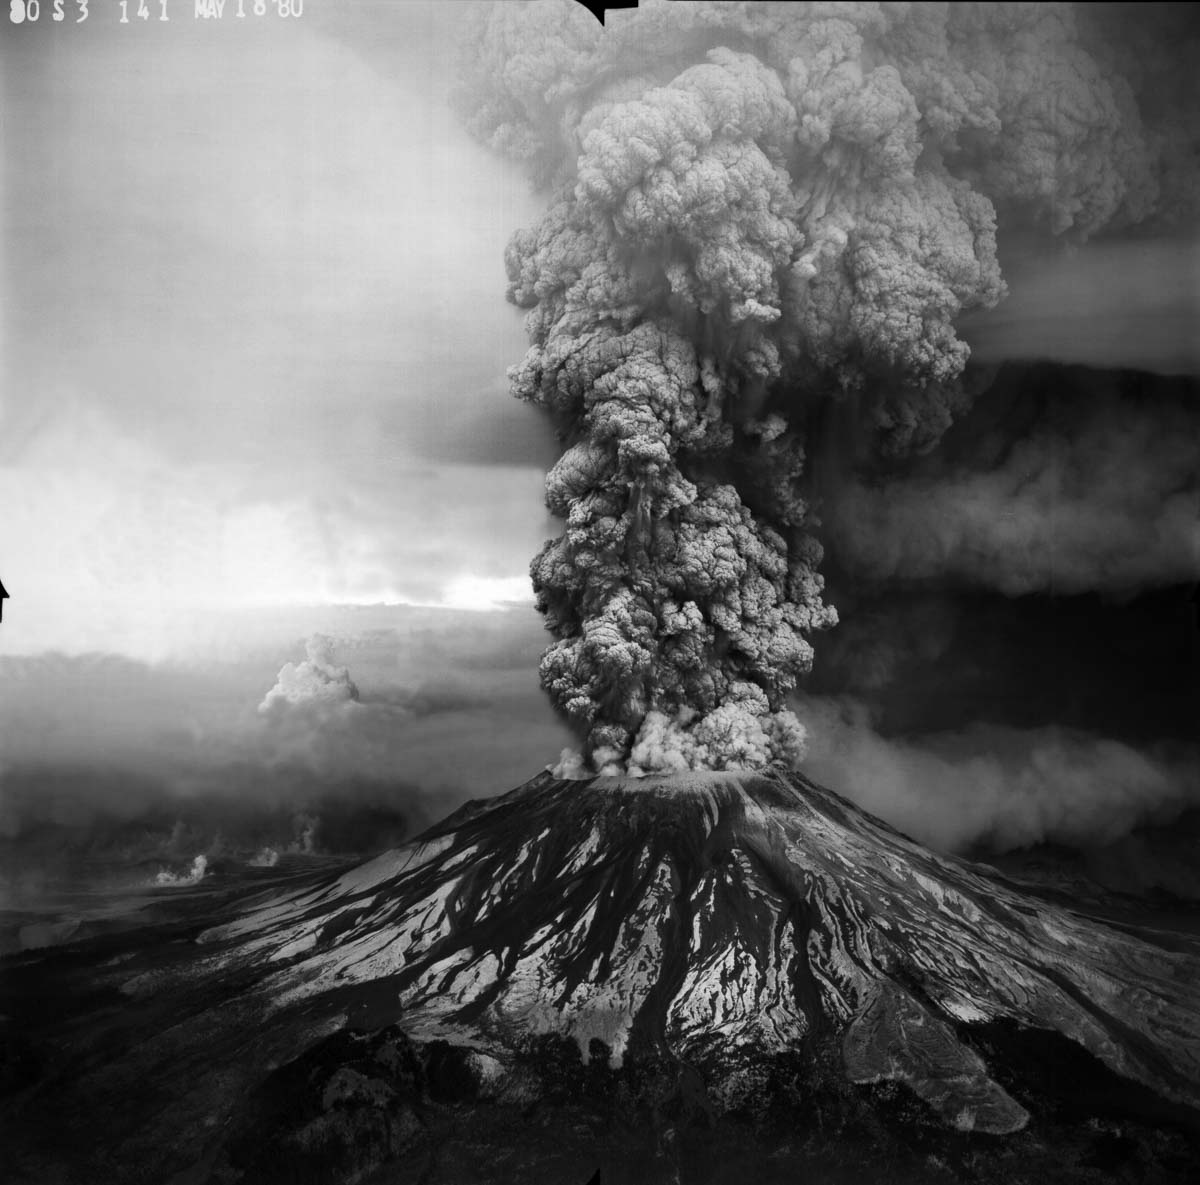 Plinian eruption column from May 18, 1980 Mount St. Helens. Aerial view from the Southwest. Photo courtesy of USGS